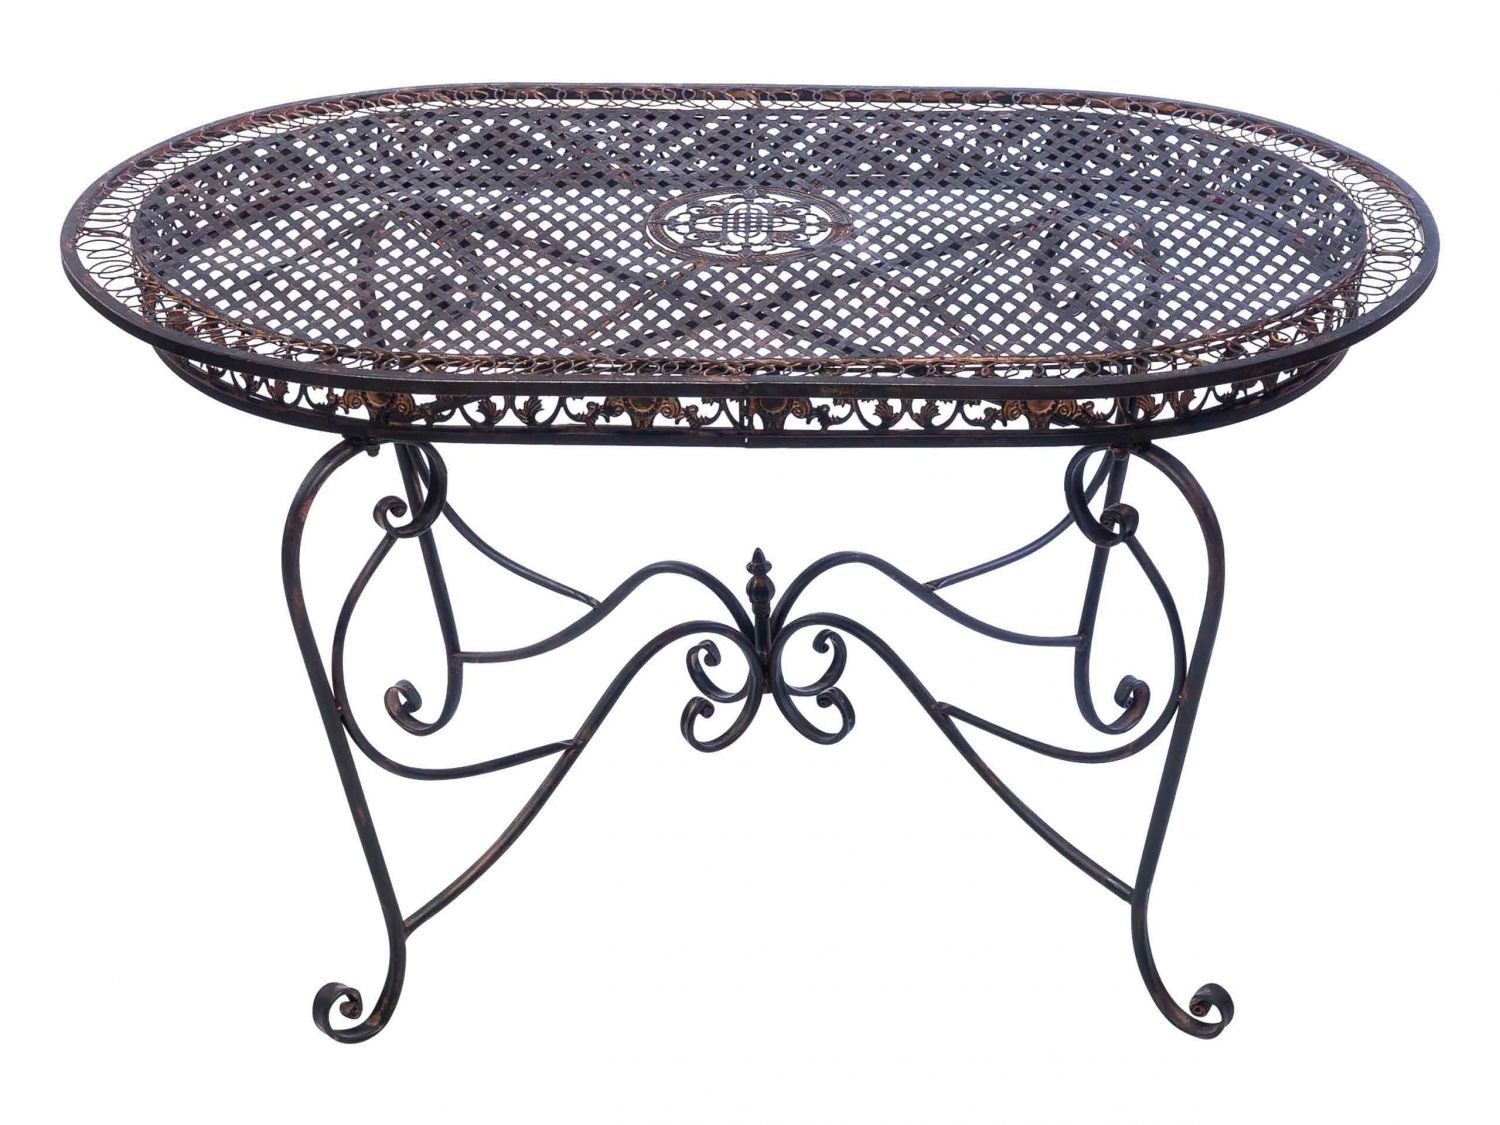 Awesome Gartentisch Cm Eisen Braun Tisch Gartenmbel Antikstil Garden Table  Iron Kaufen With Eisen Gartenmbel